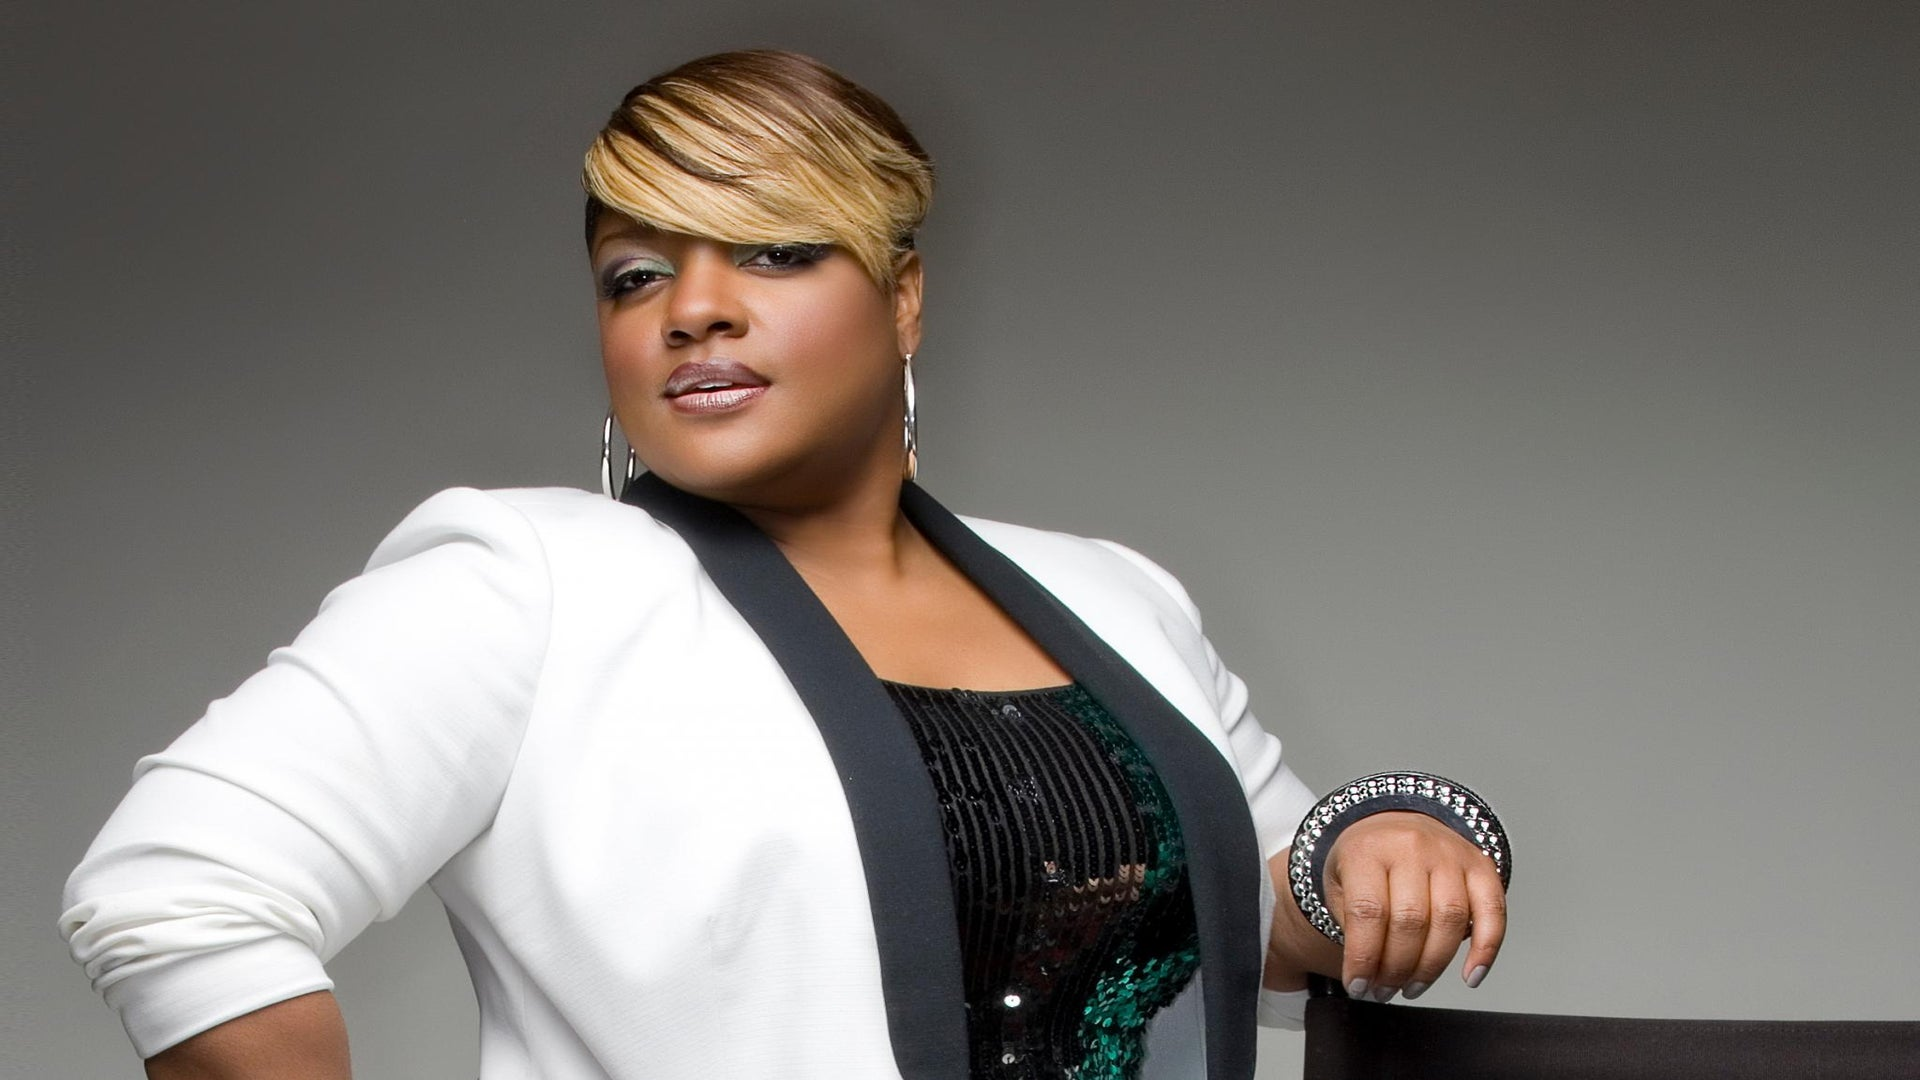 EXCLUSIVE Premiere: Gospel Singer Anita Wilson Shines Bright in 'You Love Me' Video